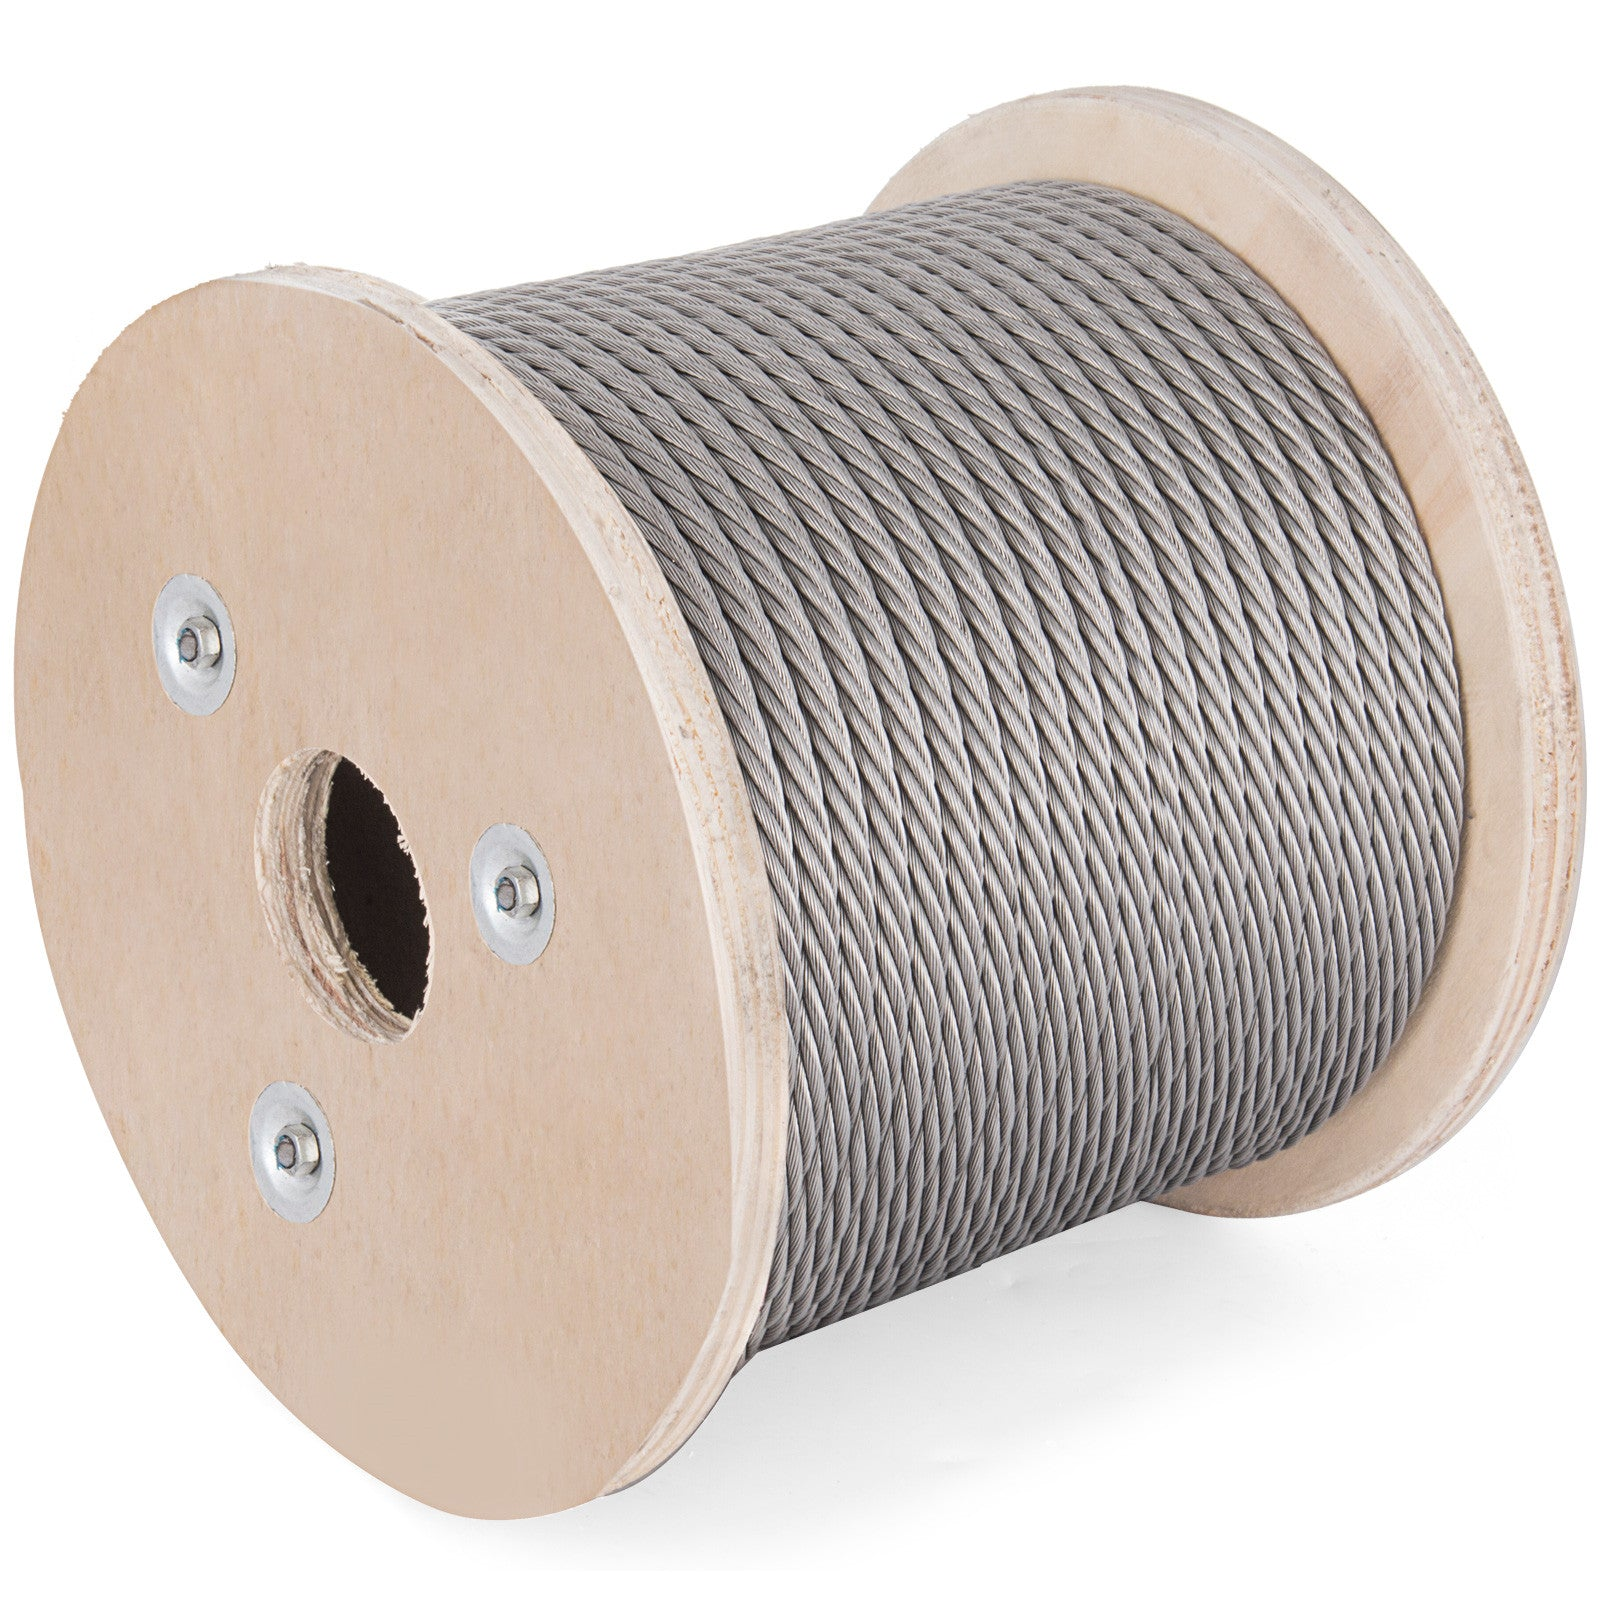 "T-304 Grade 7 X 19 Stainless Steel Cable Wire Rope 3/8"" - 200 Ft"